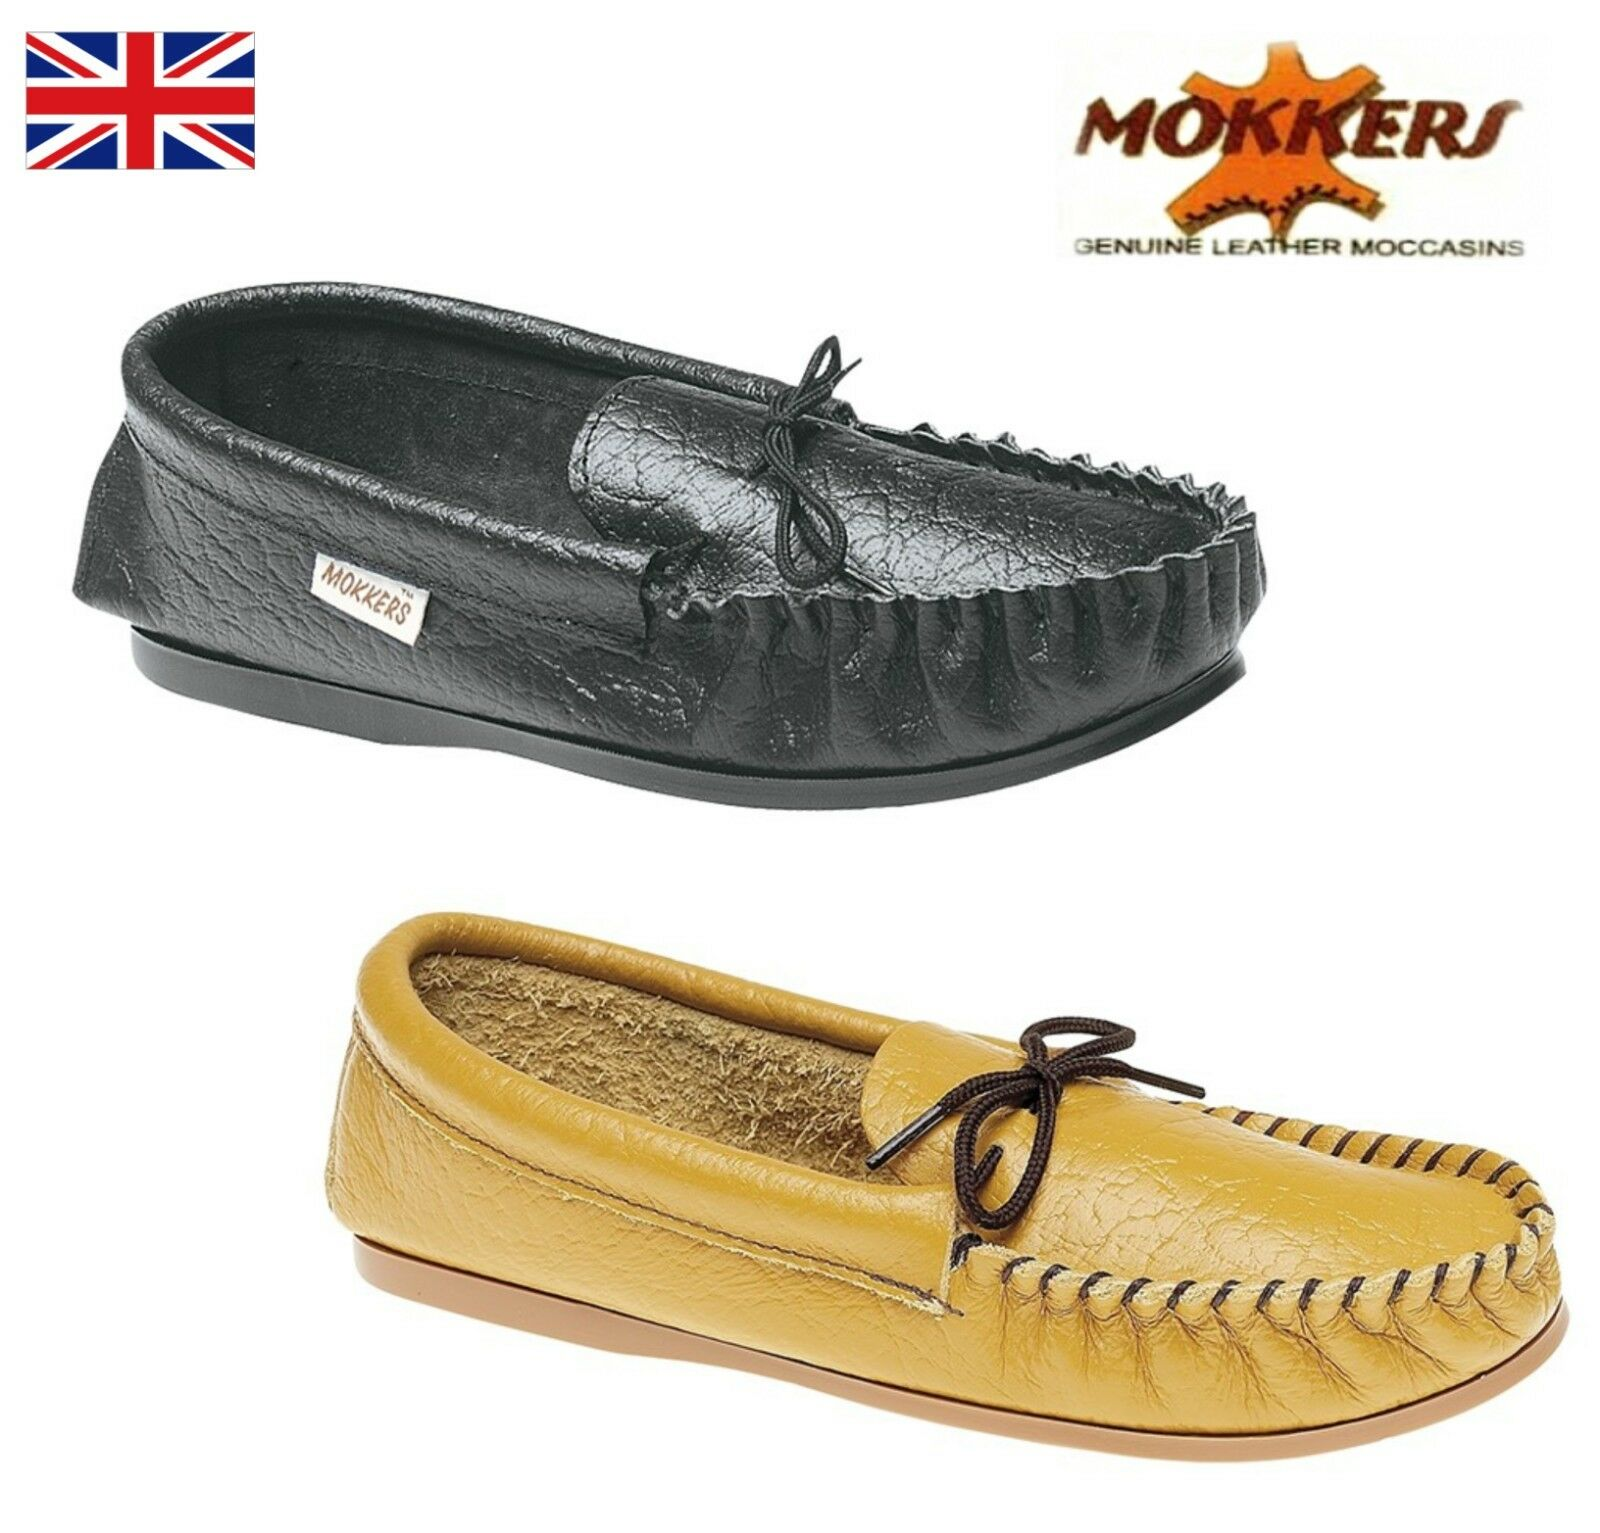 Mens Quality Softie Leather Moccasin Slippers Black Tan Size 6 7 8 9 10 11 12 13